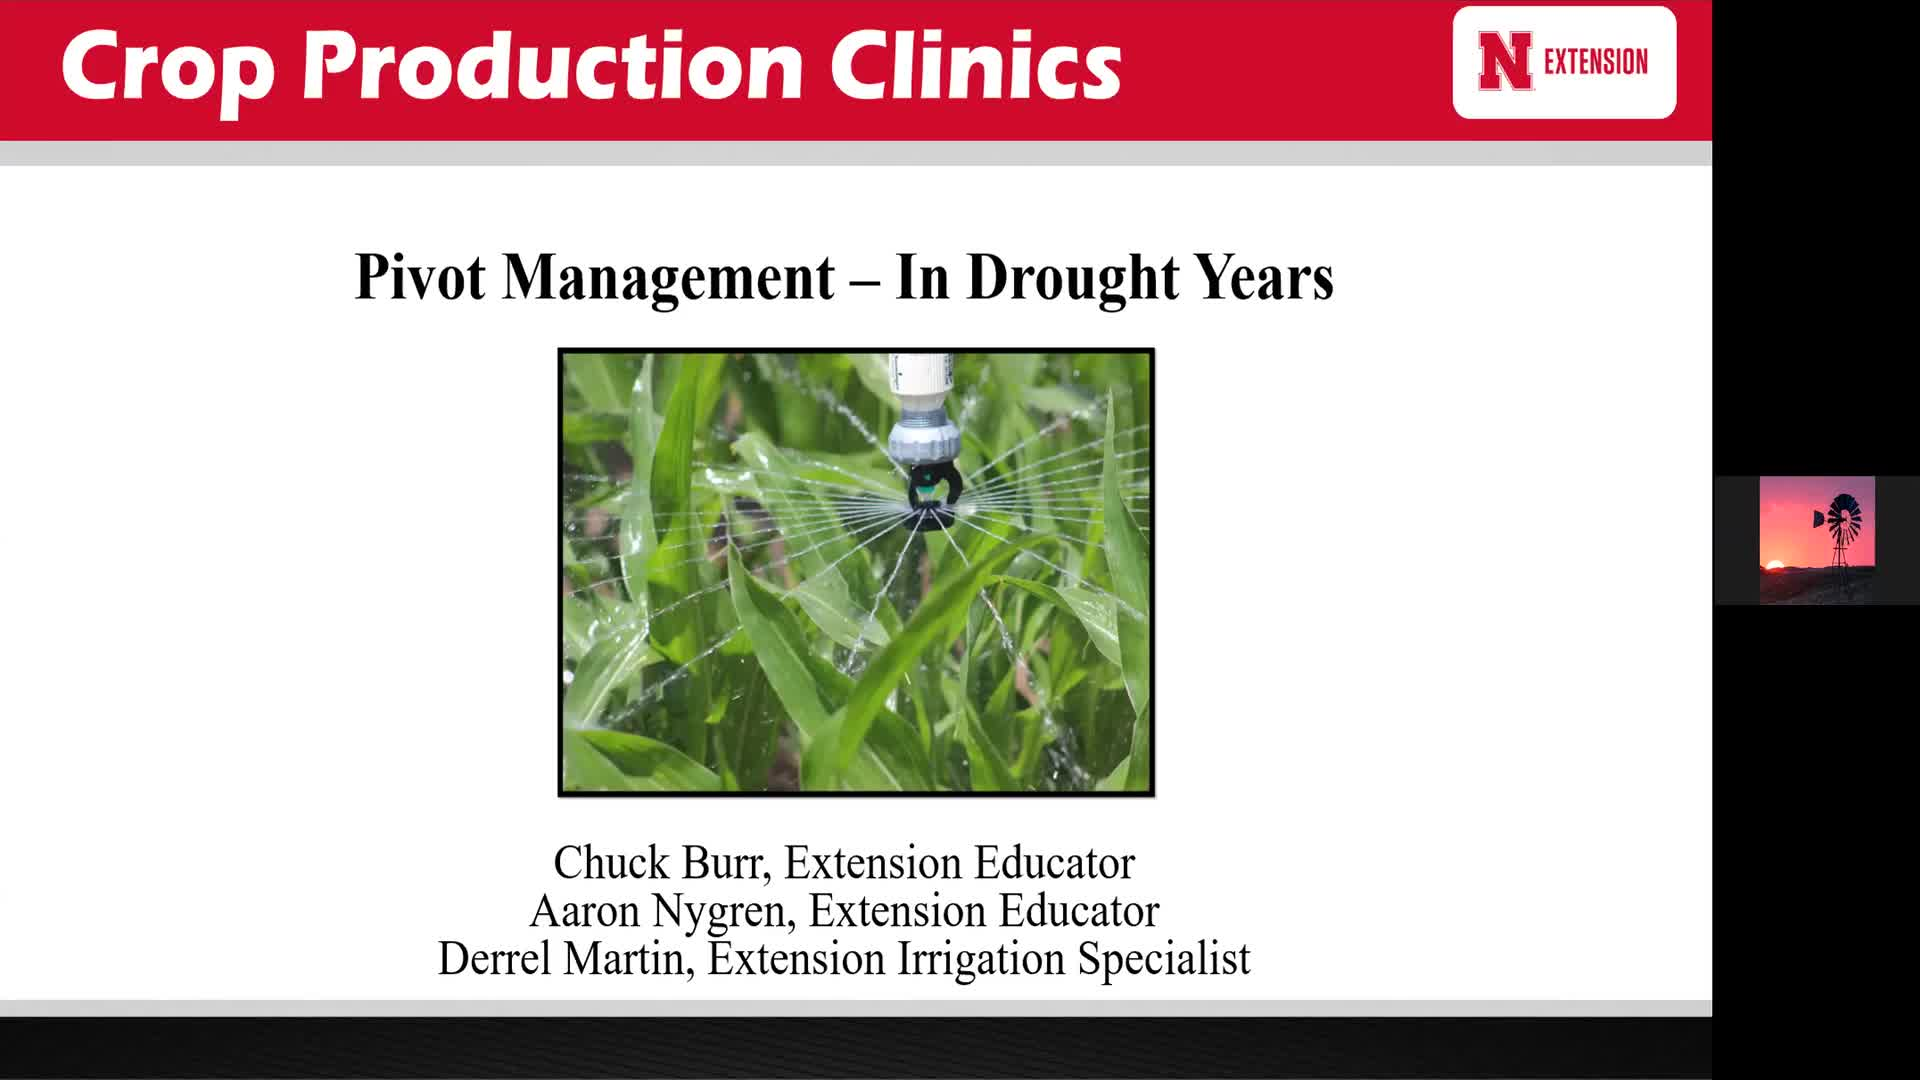 Pivot Management - In Drought Years